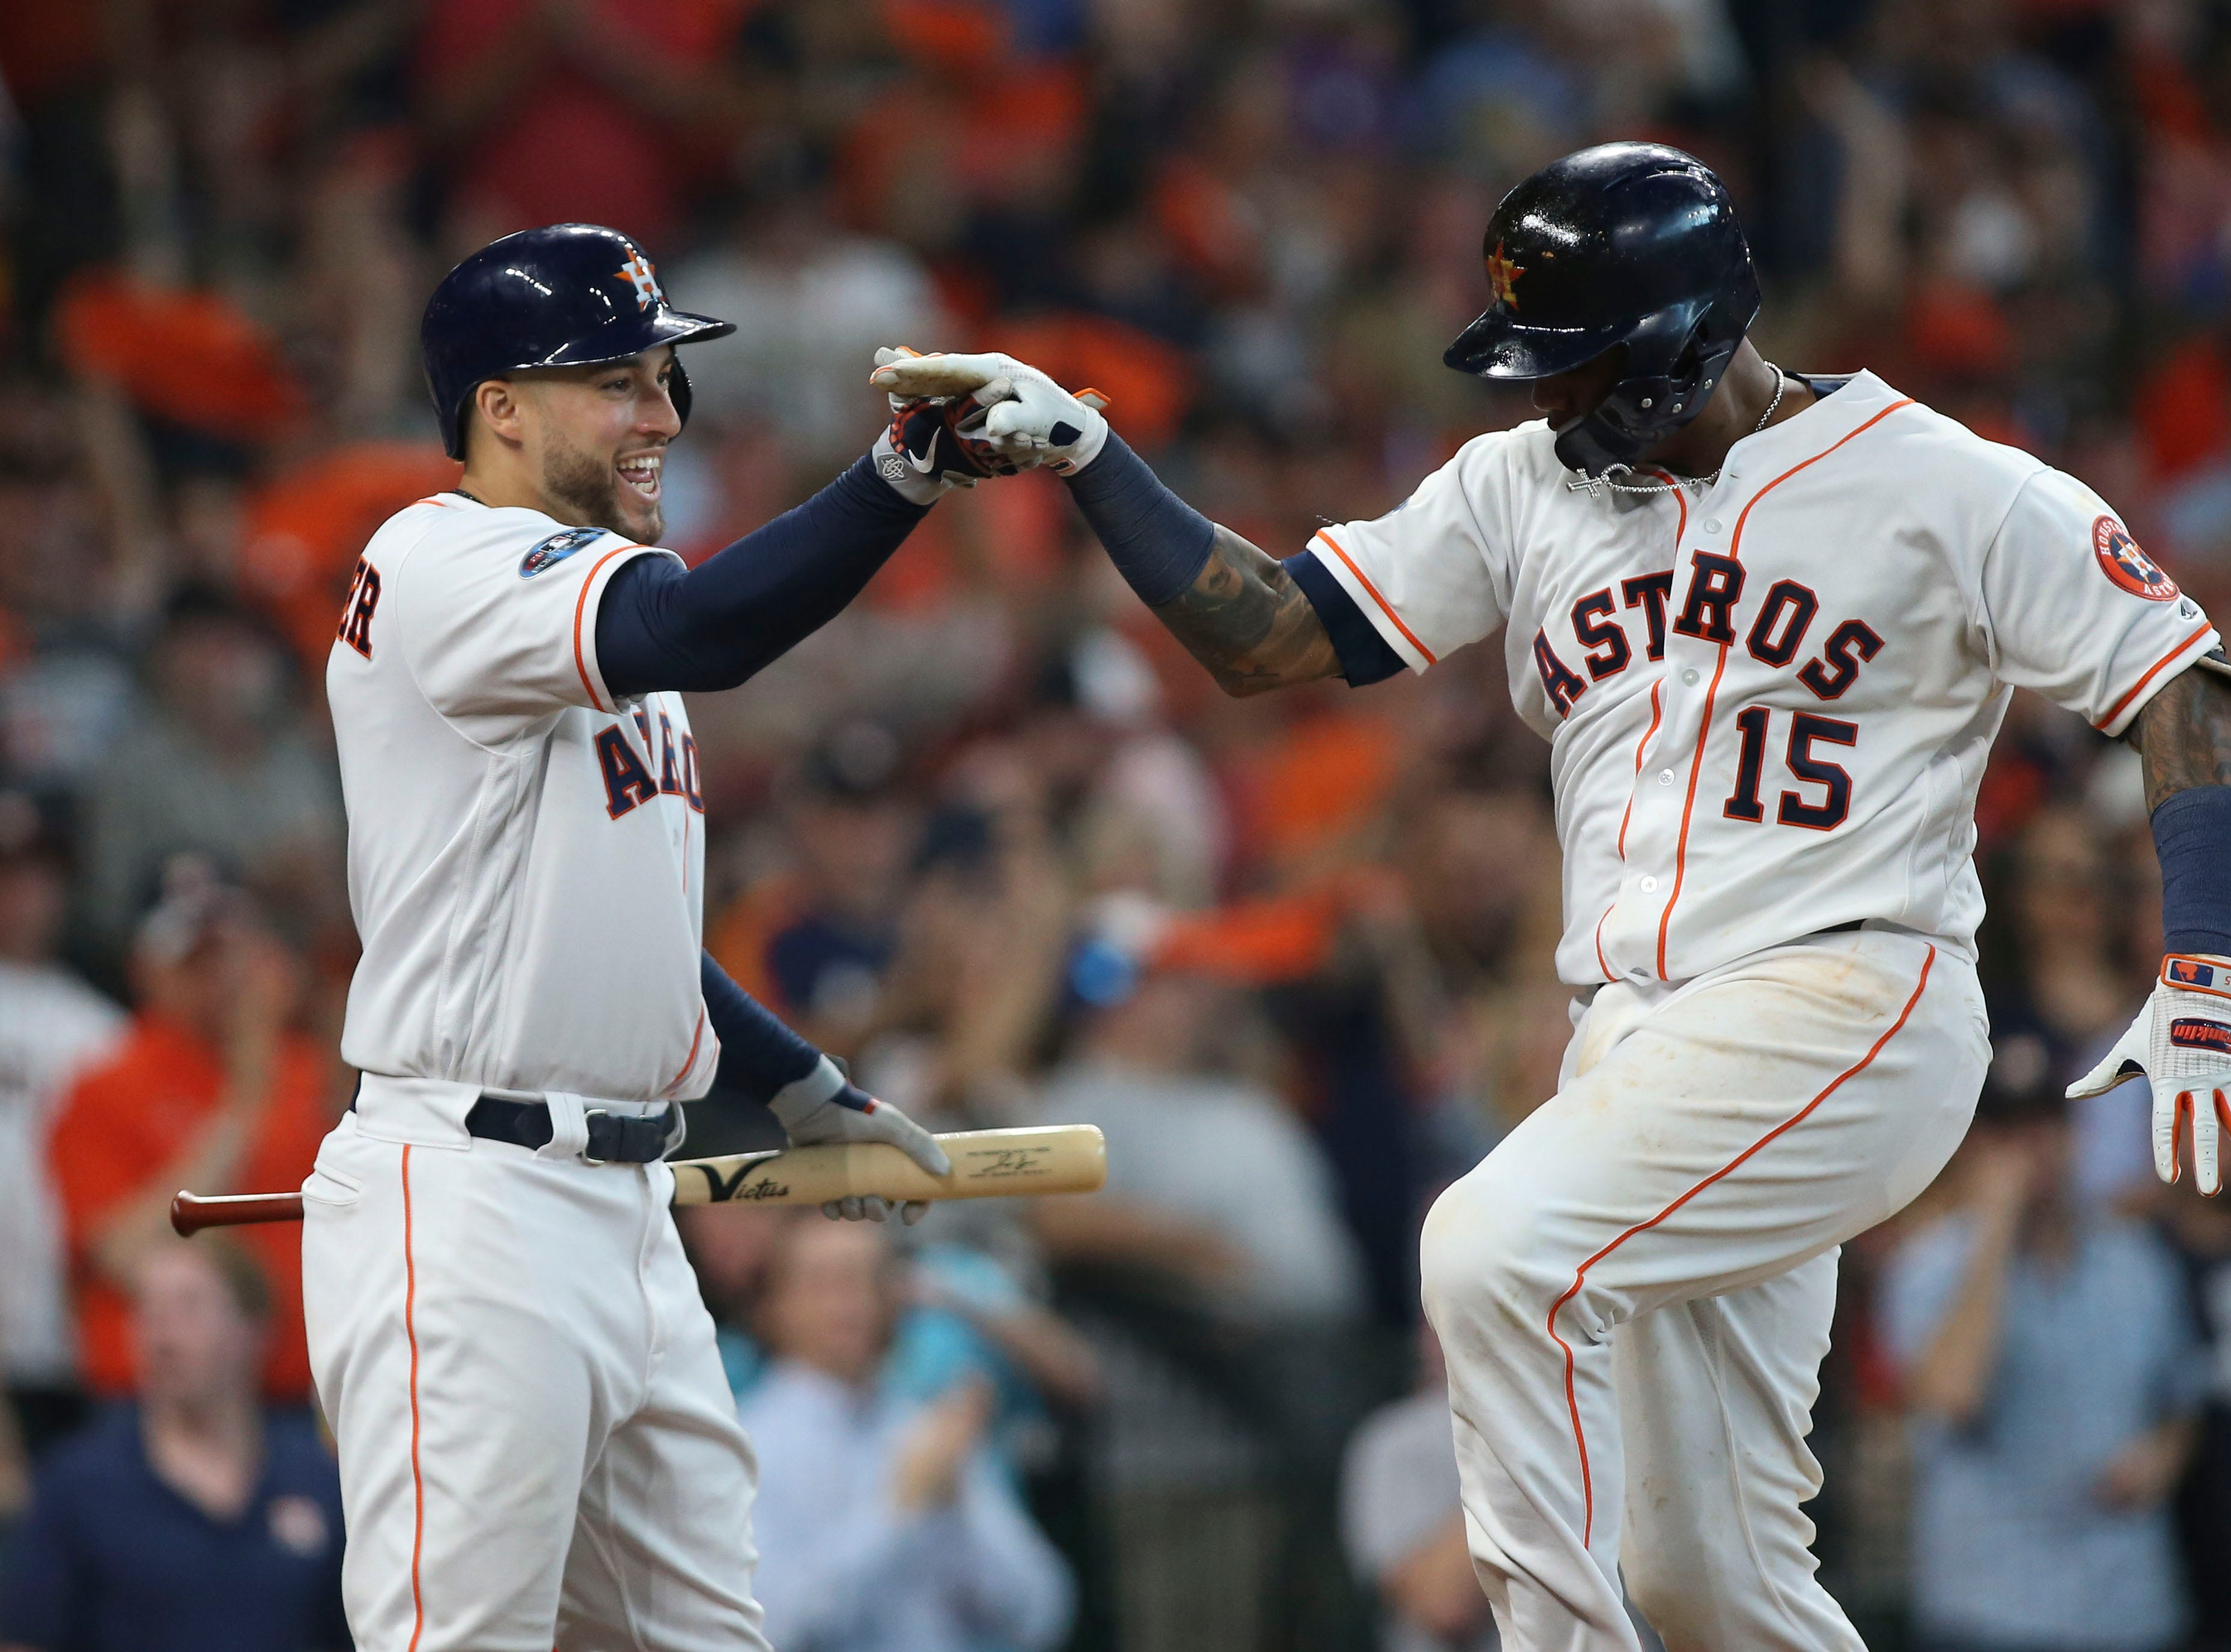 ALDS Game 1: Astros catcher Martin Maldonado is congratulated by George Springer after hitting a solo home run in the seventh inning.